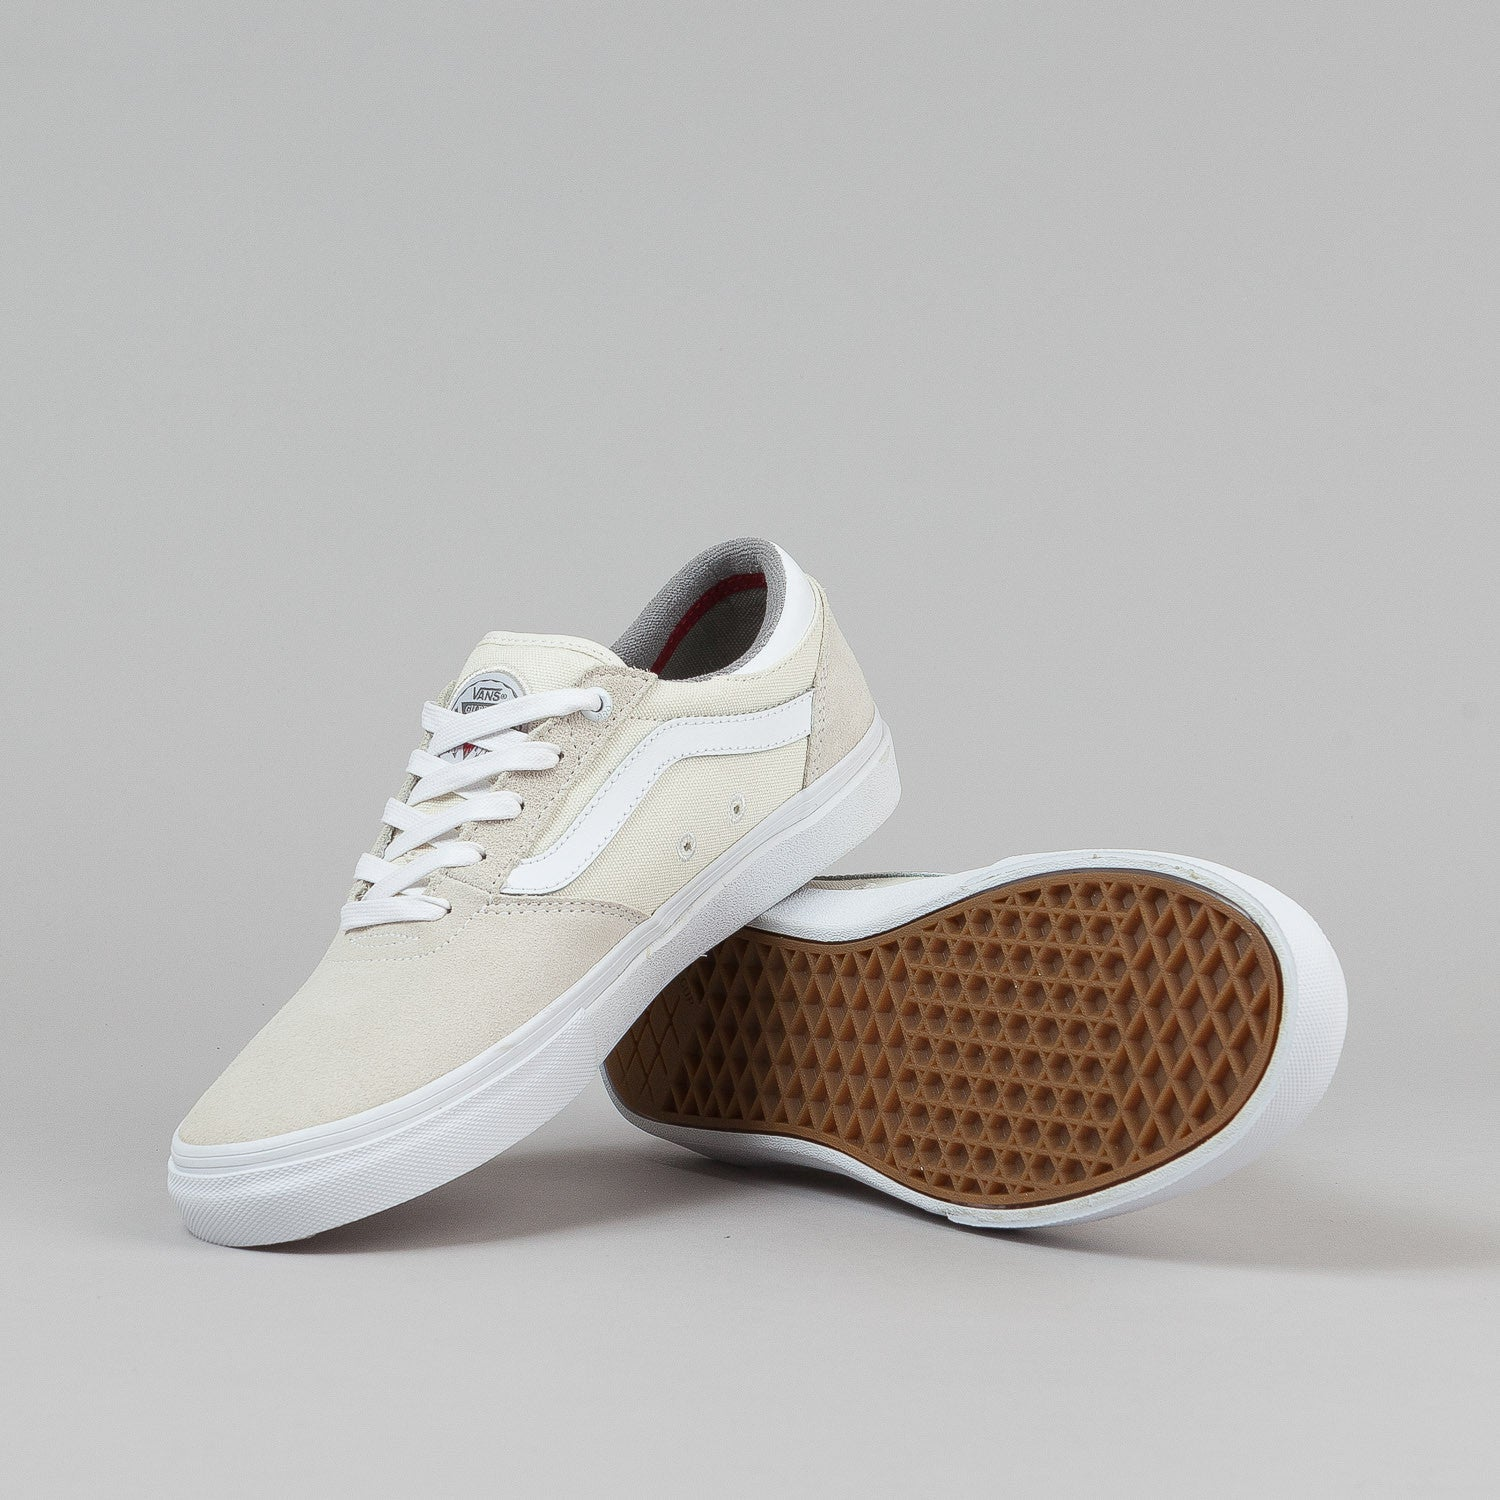 Vans Gilbert Crockett Pro Shoes - Whisper White